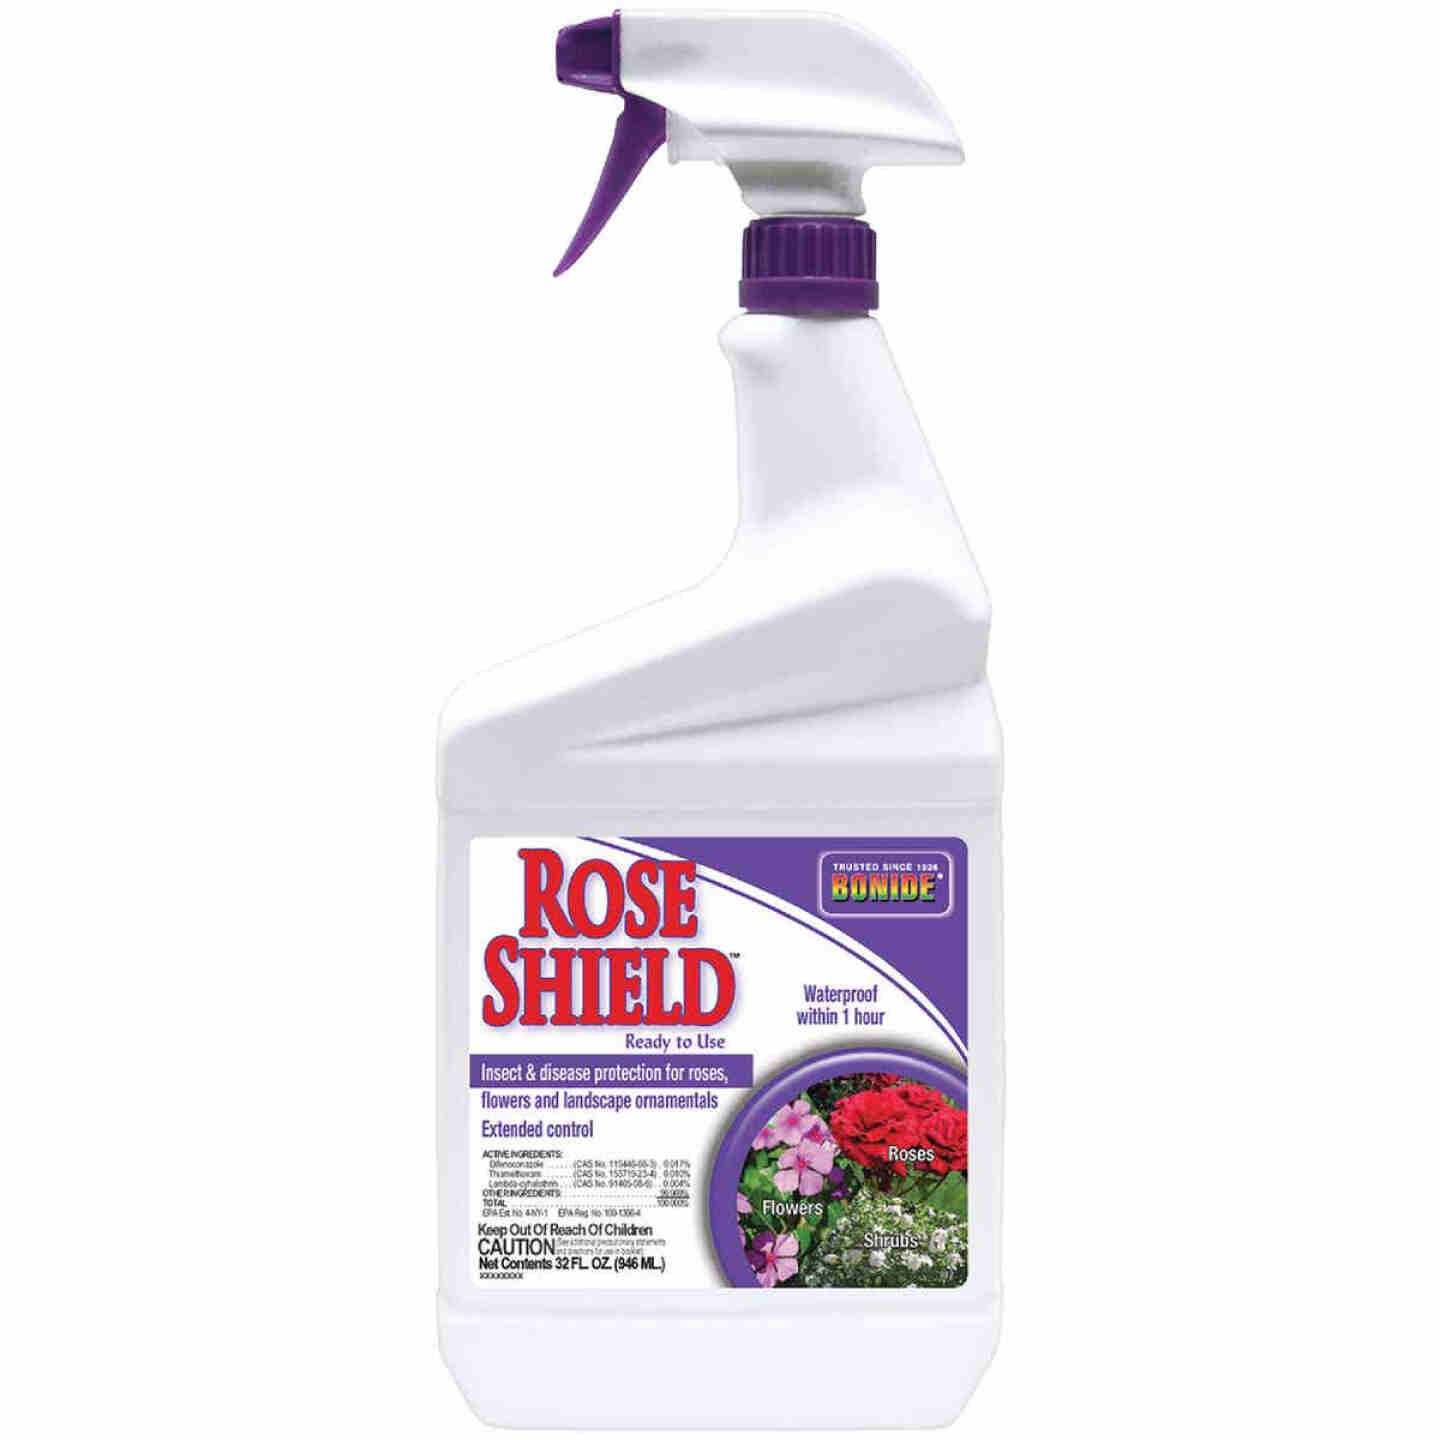 Bonide Rose Shield 1 Qt. Ready To Use Trigger Spray Insect & Disease Killer Image 1